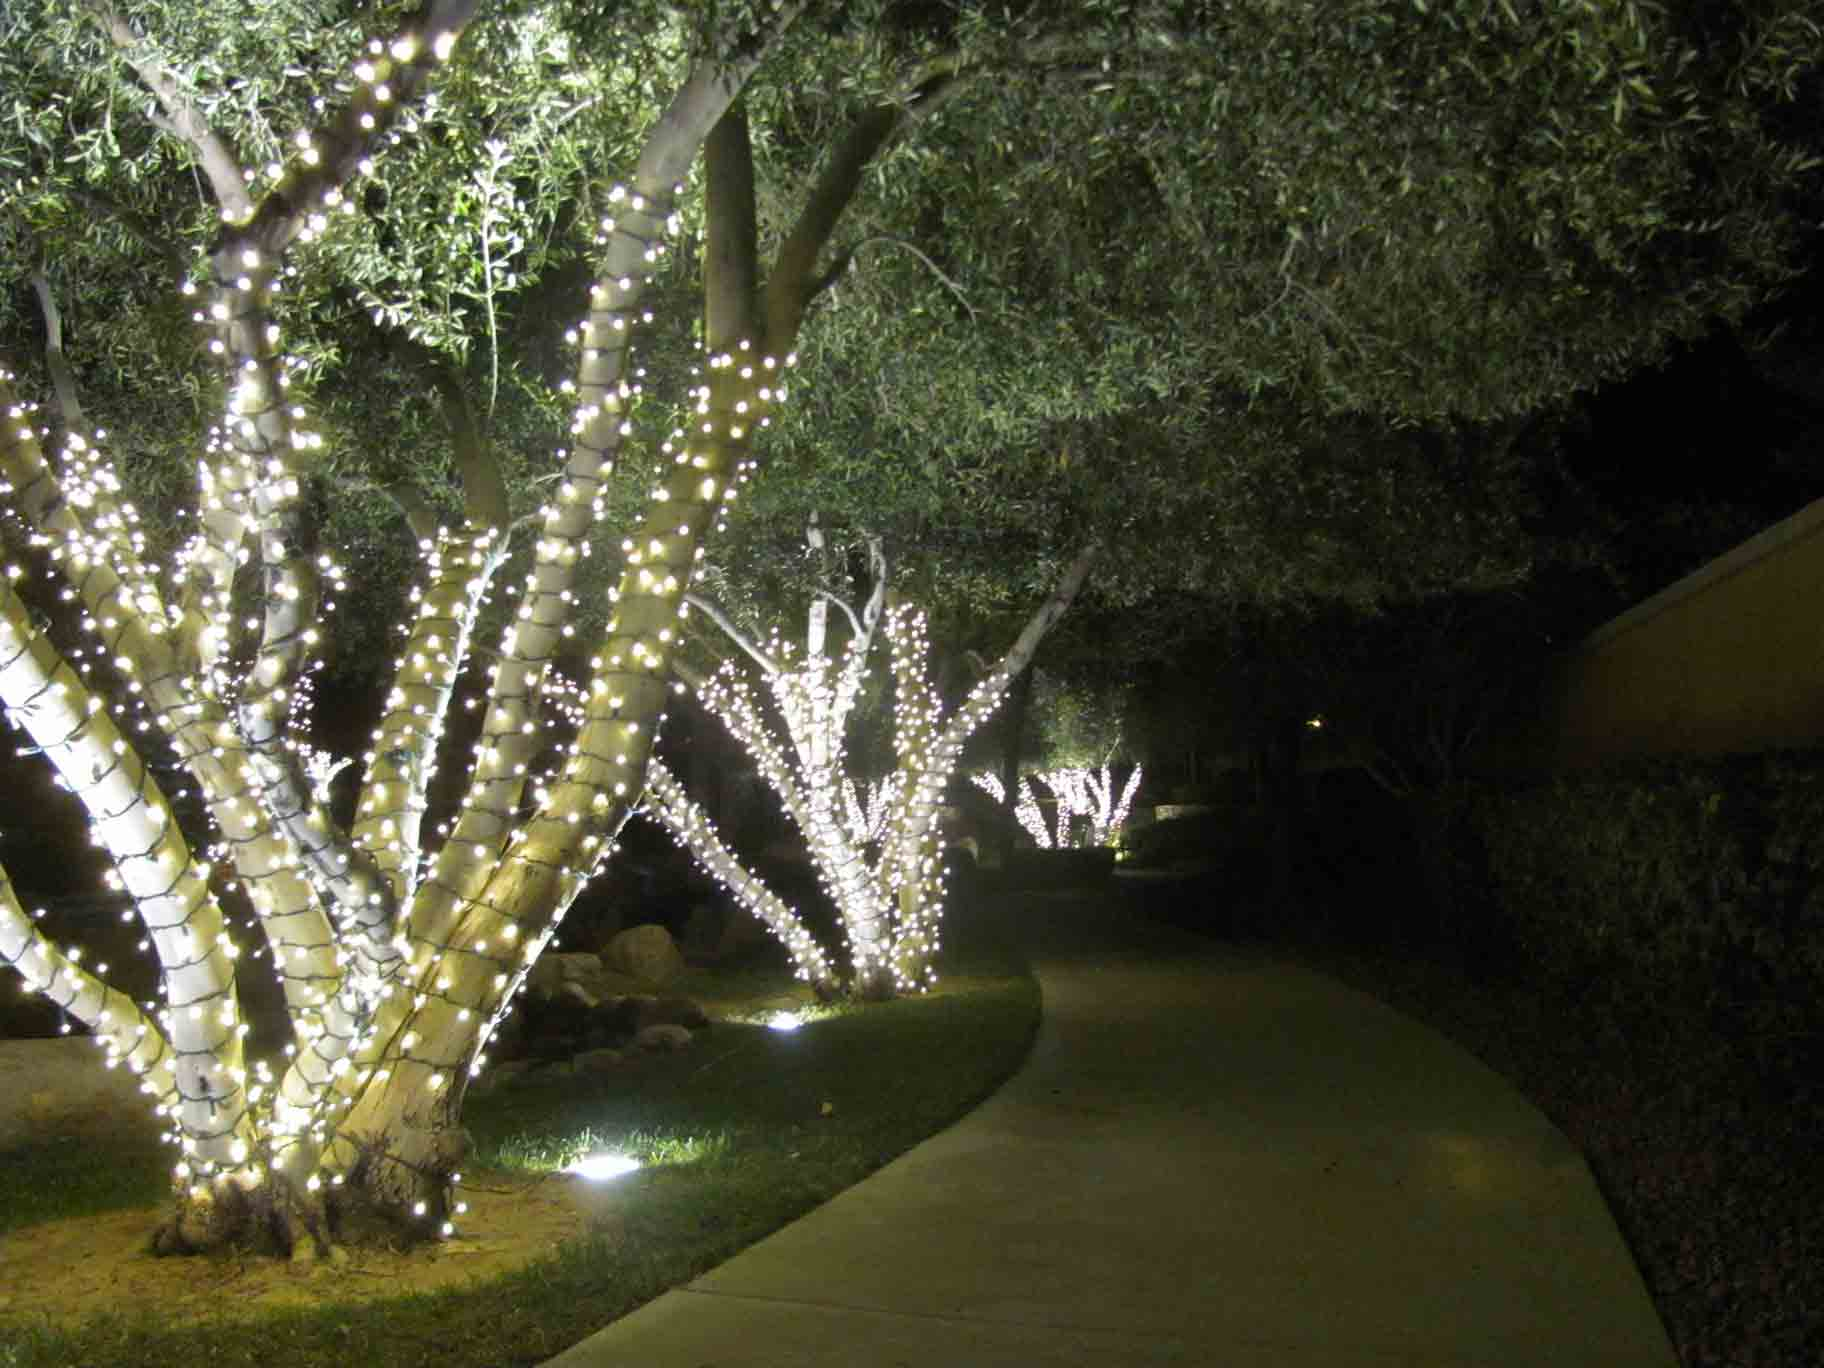 Professional Christmas lighting service by Holiday Decorations in Las Vegas